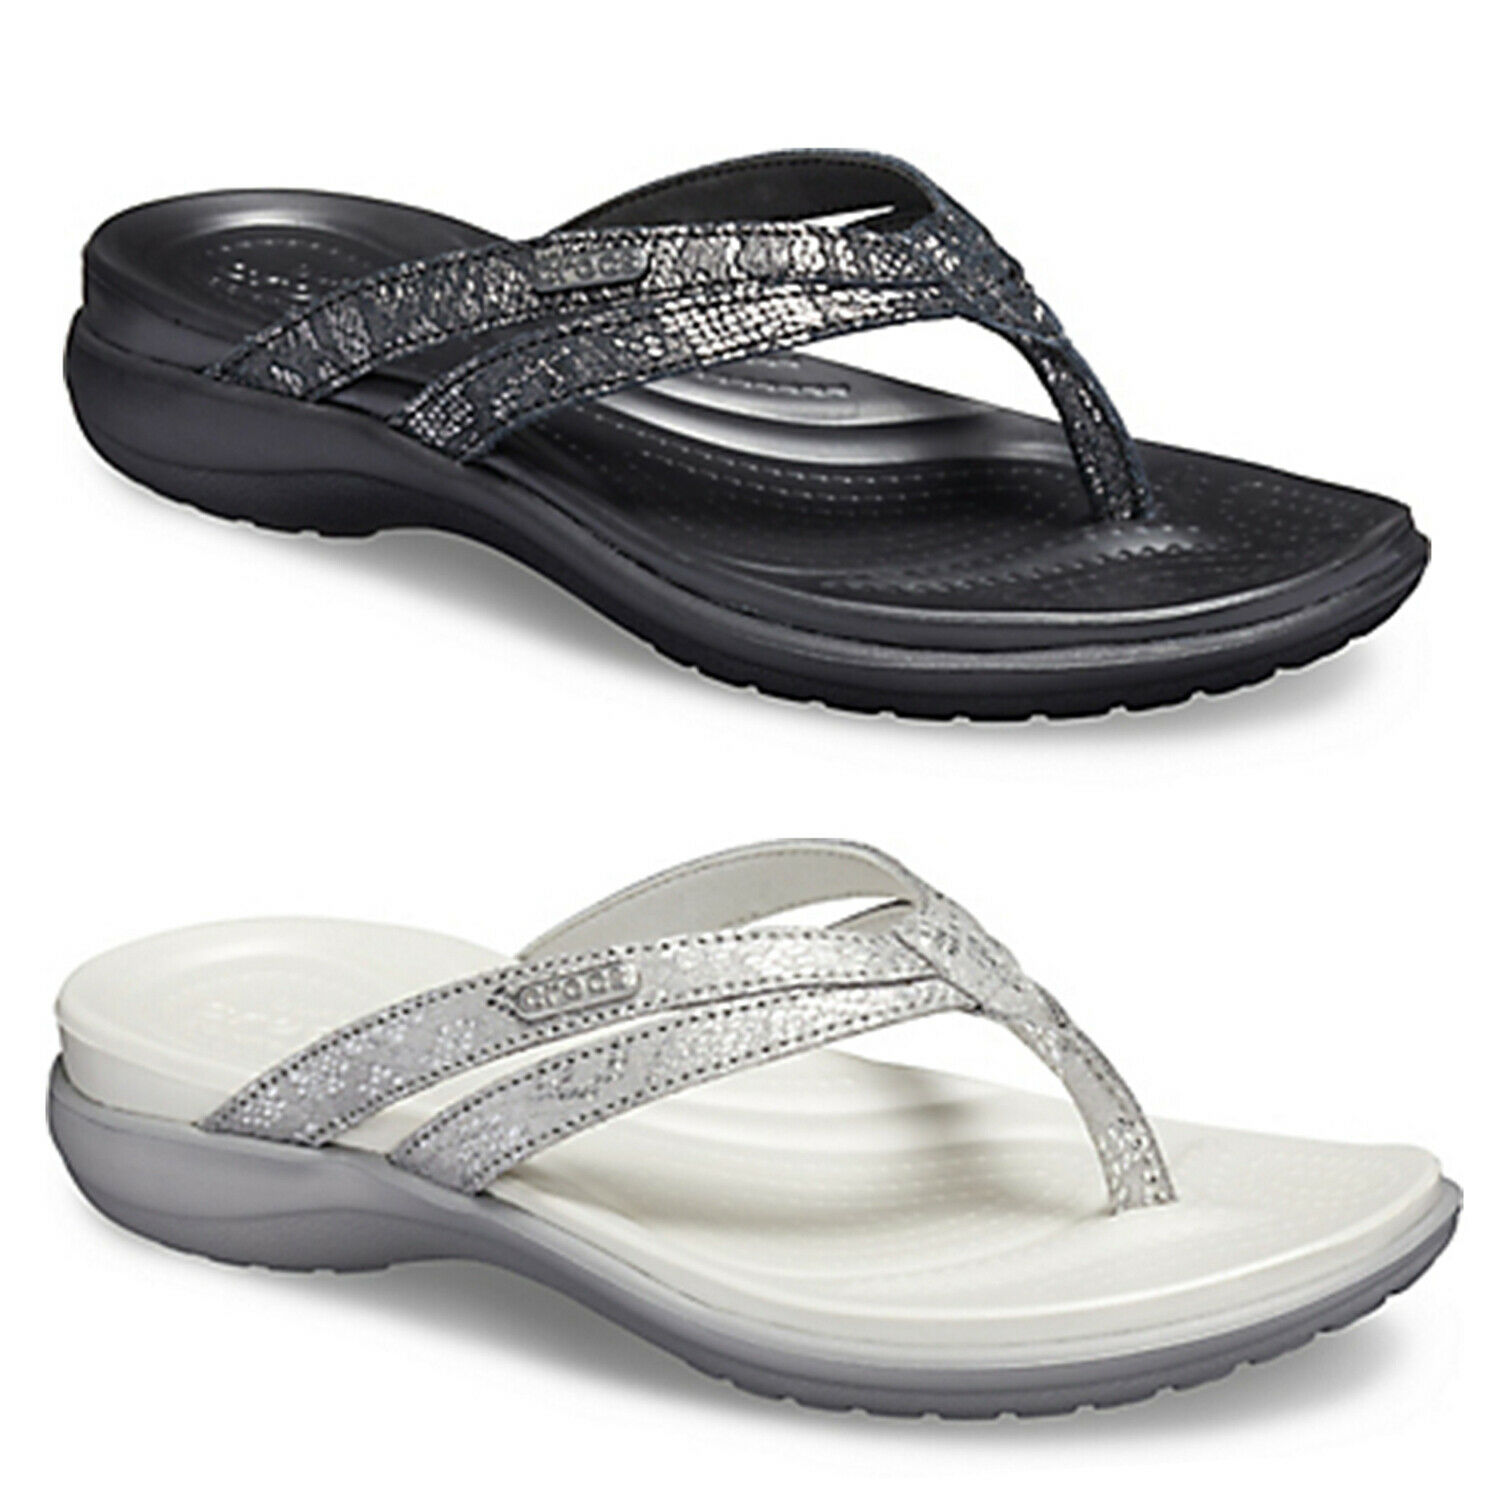 Crocs Womens Capri Strappy Flip Flops Ladies Dual Comfort Cushioned Thong Sandal